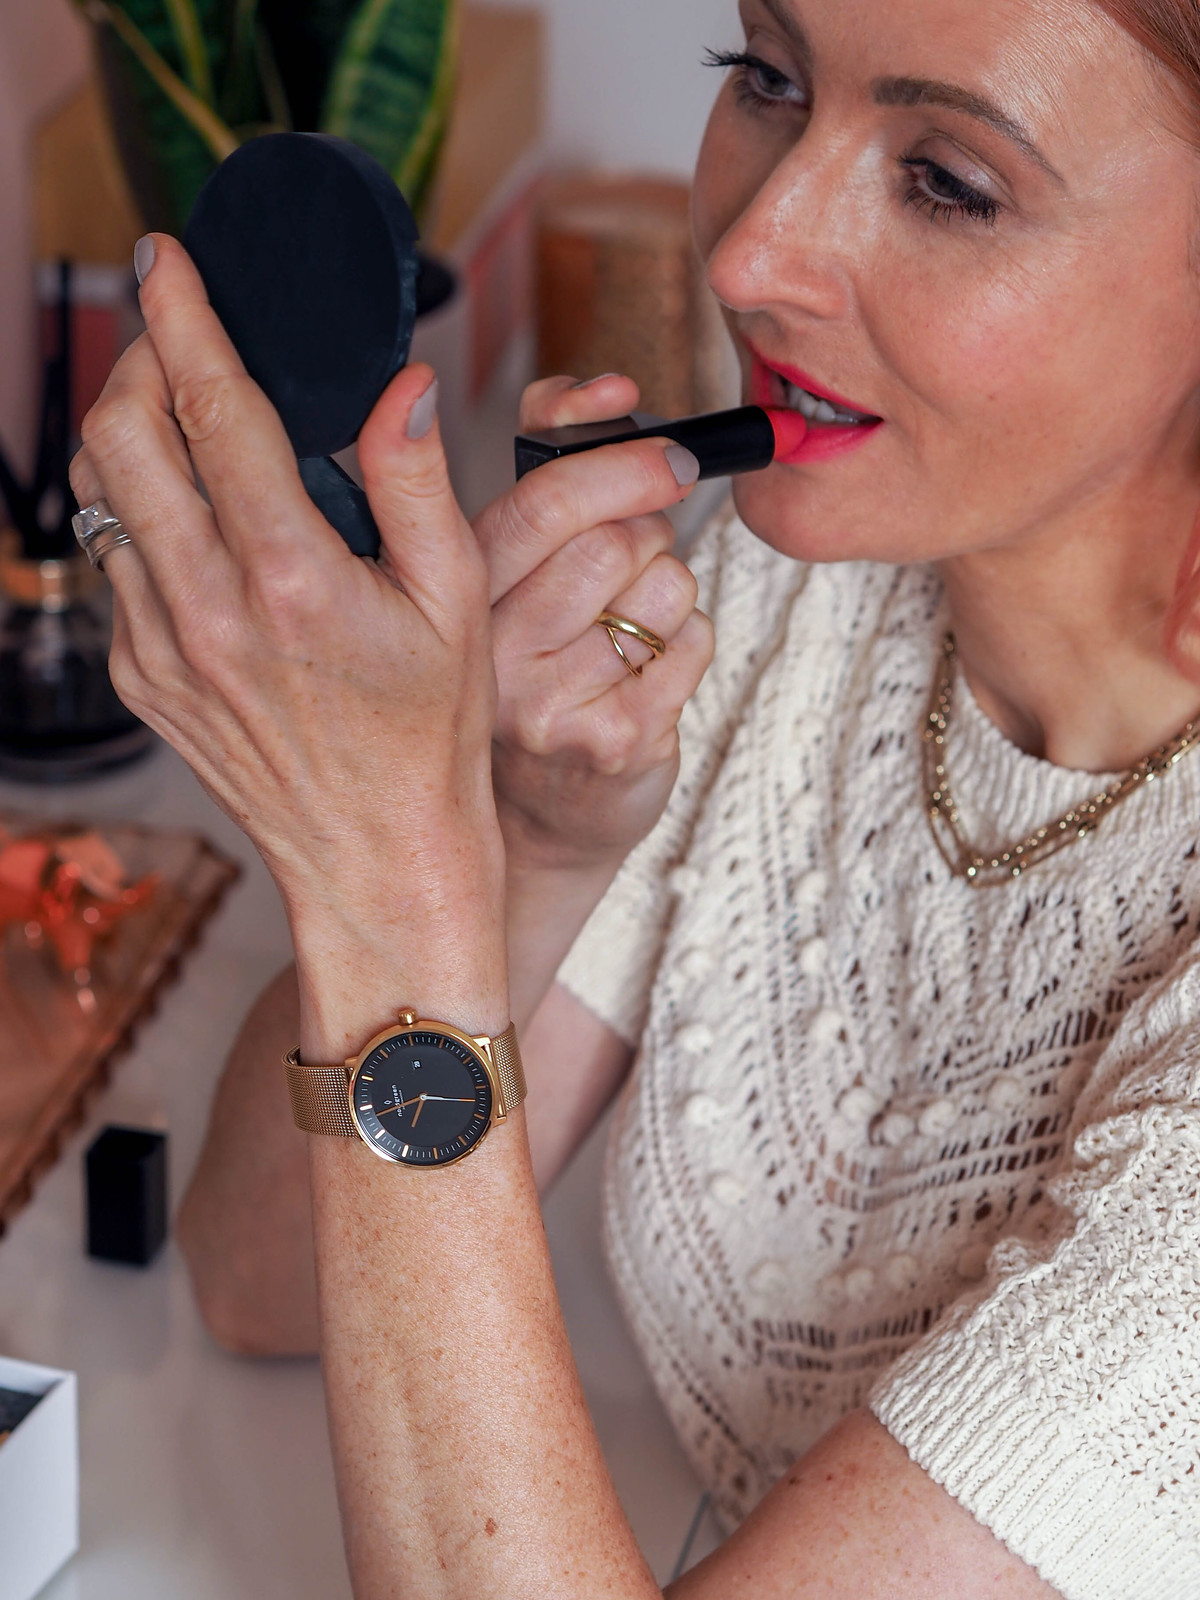 A Classic Black and Gold Watch With Ethical, Sustainable Credentials (Catherine Summers AKA Not Dressed As Lamb is sitting at her dressing table showing off her Nordgreen watch)